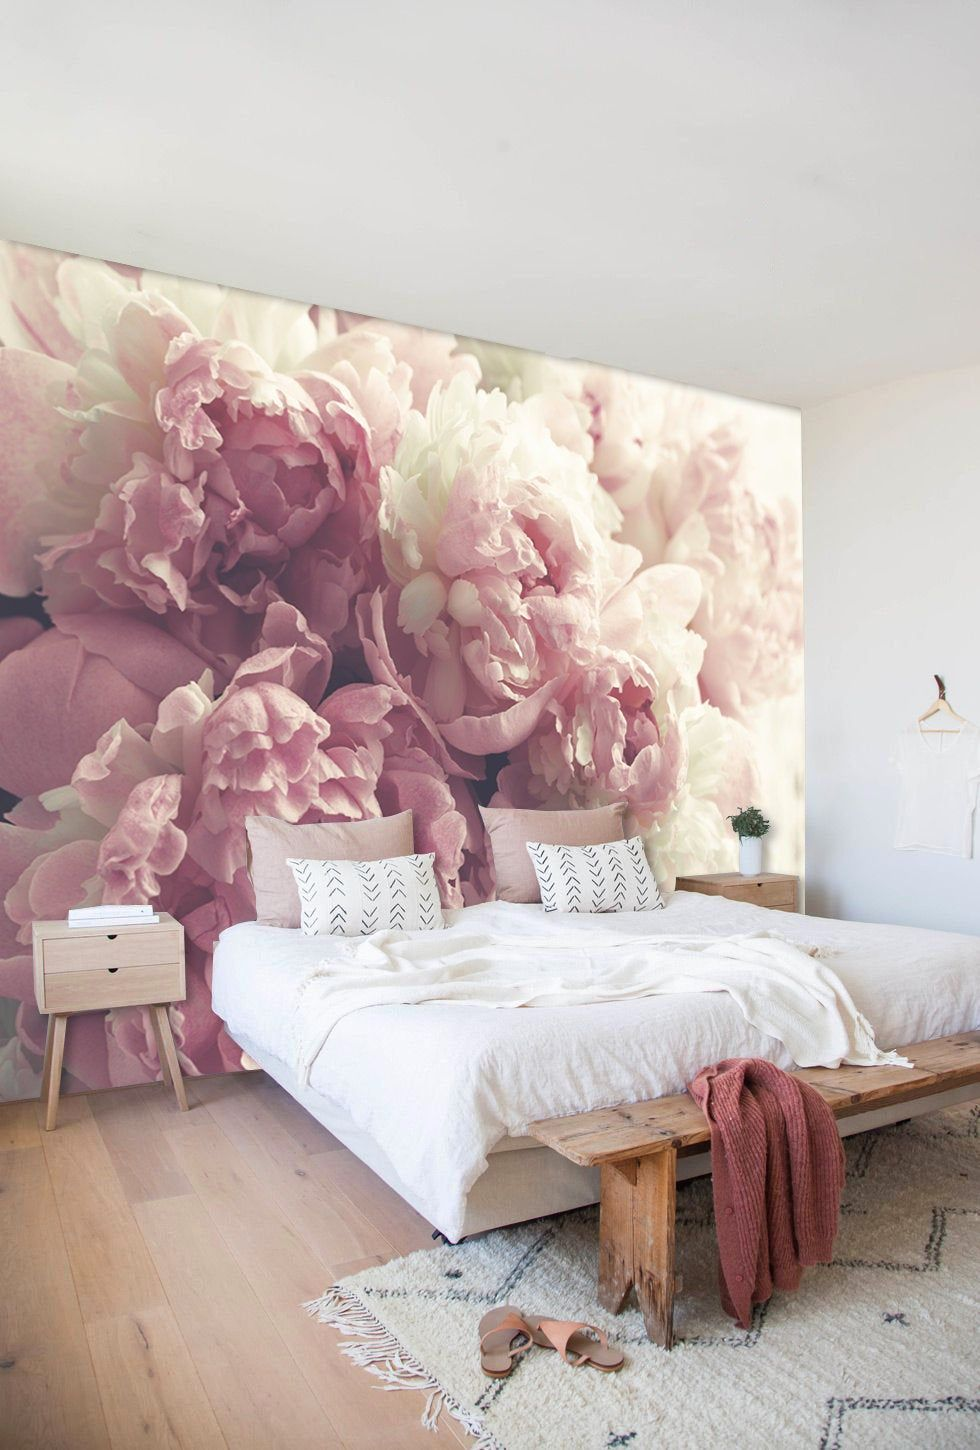 Peony Floral Wall Mural in Pale Pink and OffWhite